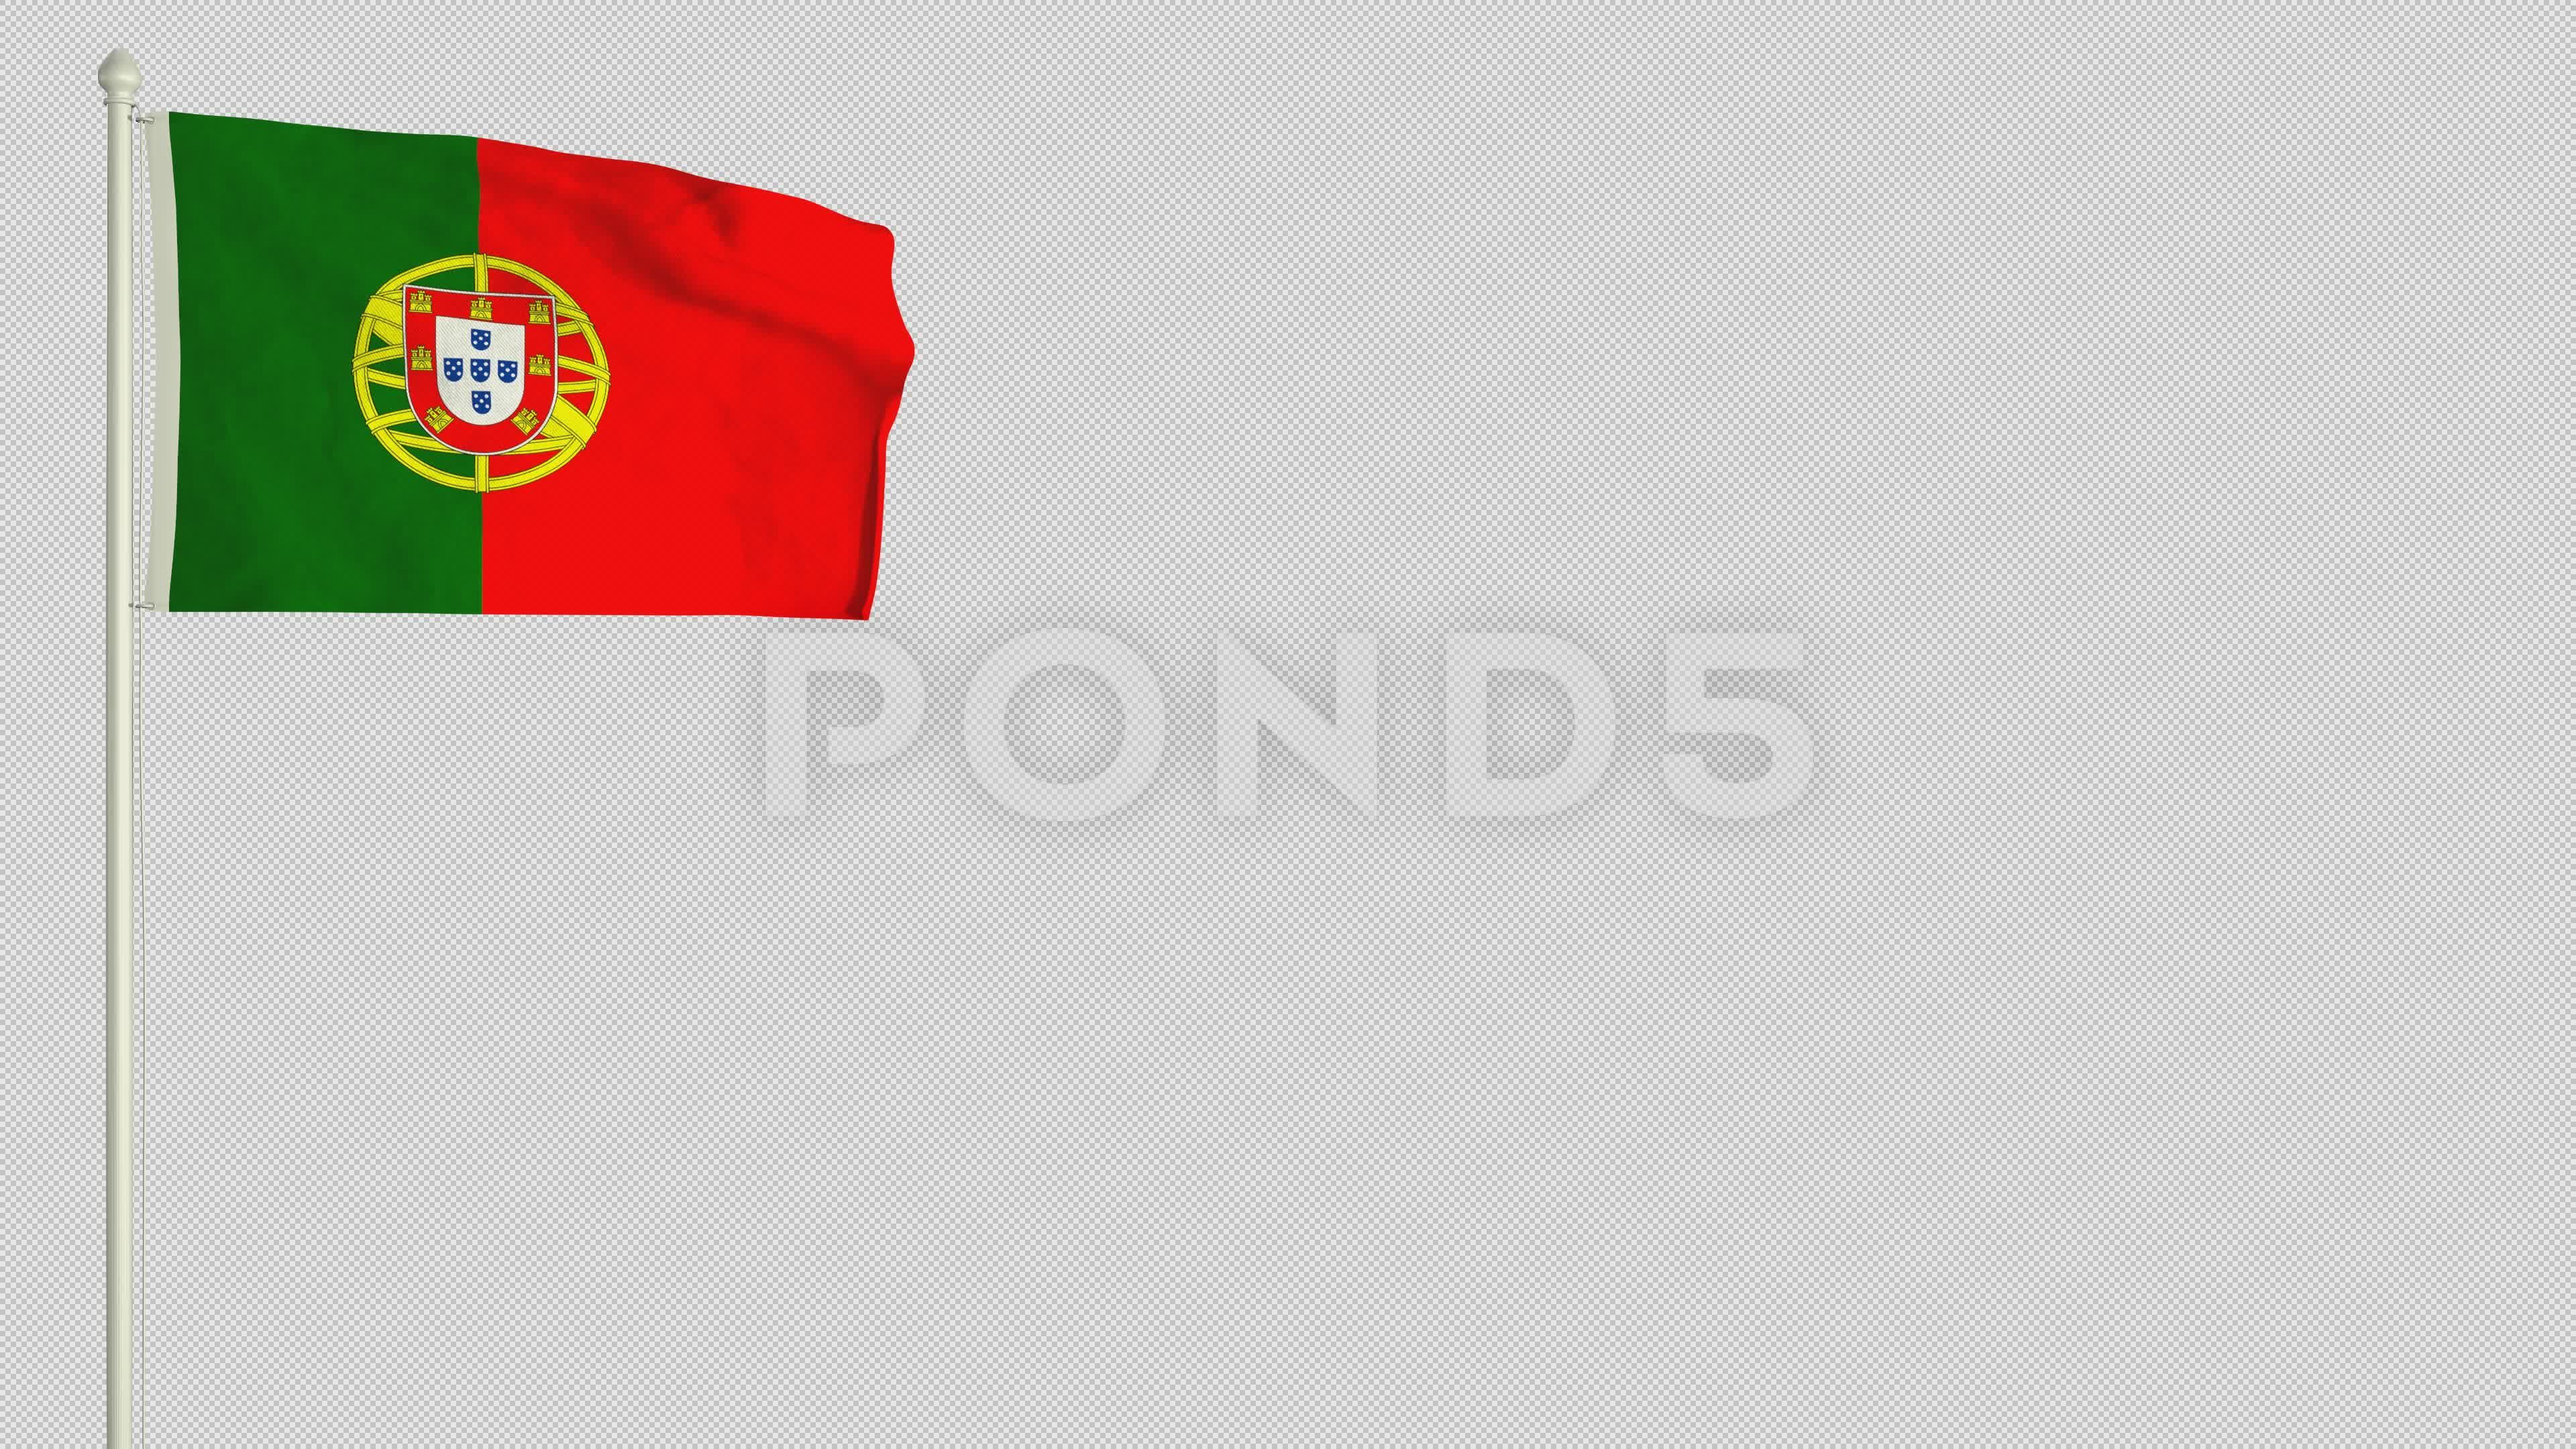 Portuguese Flag Waving In The Wind With Png Alpha Channel Stock Footage Ad Waving Wind Portuguese Flag Portuguese Flag Portuguese Flag